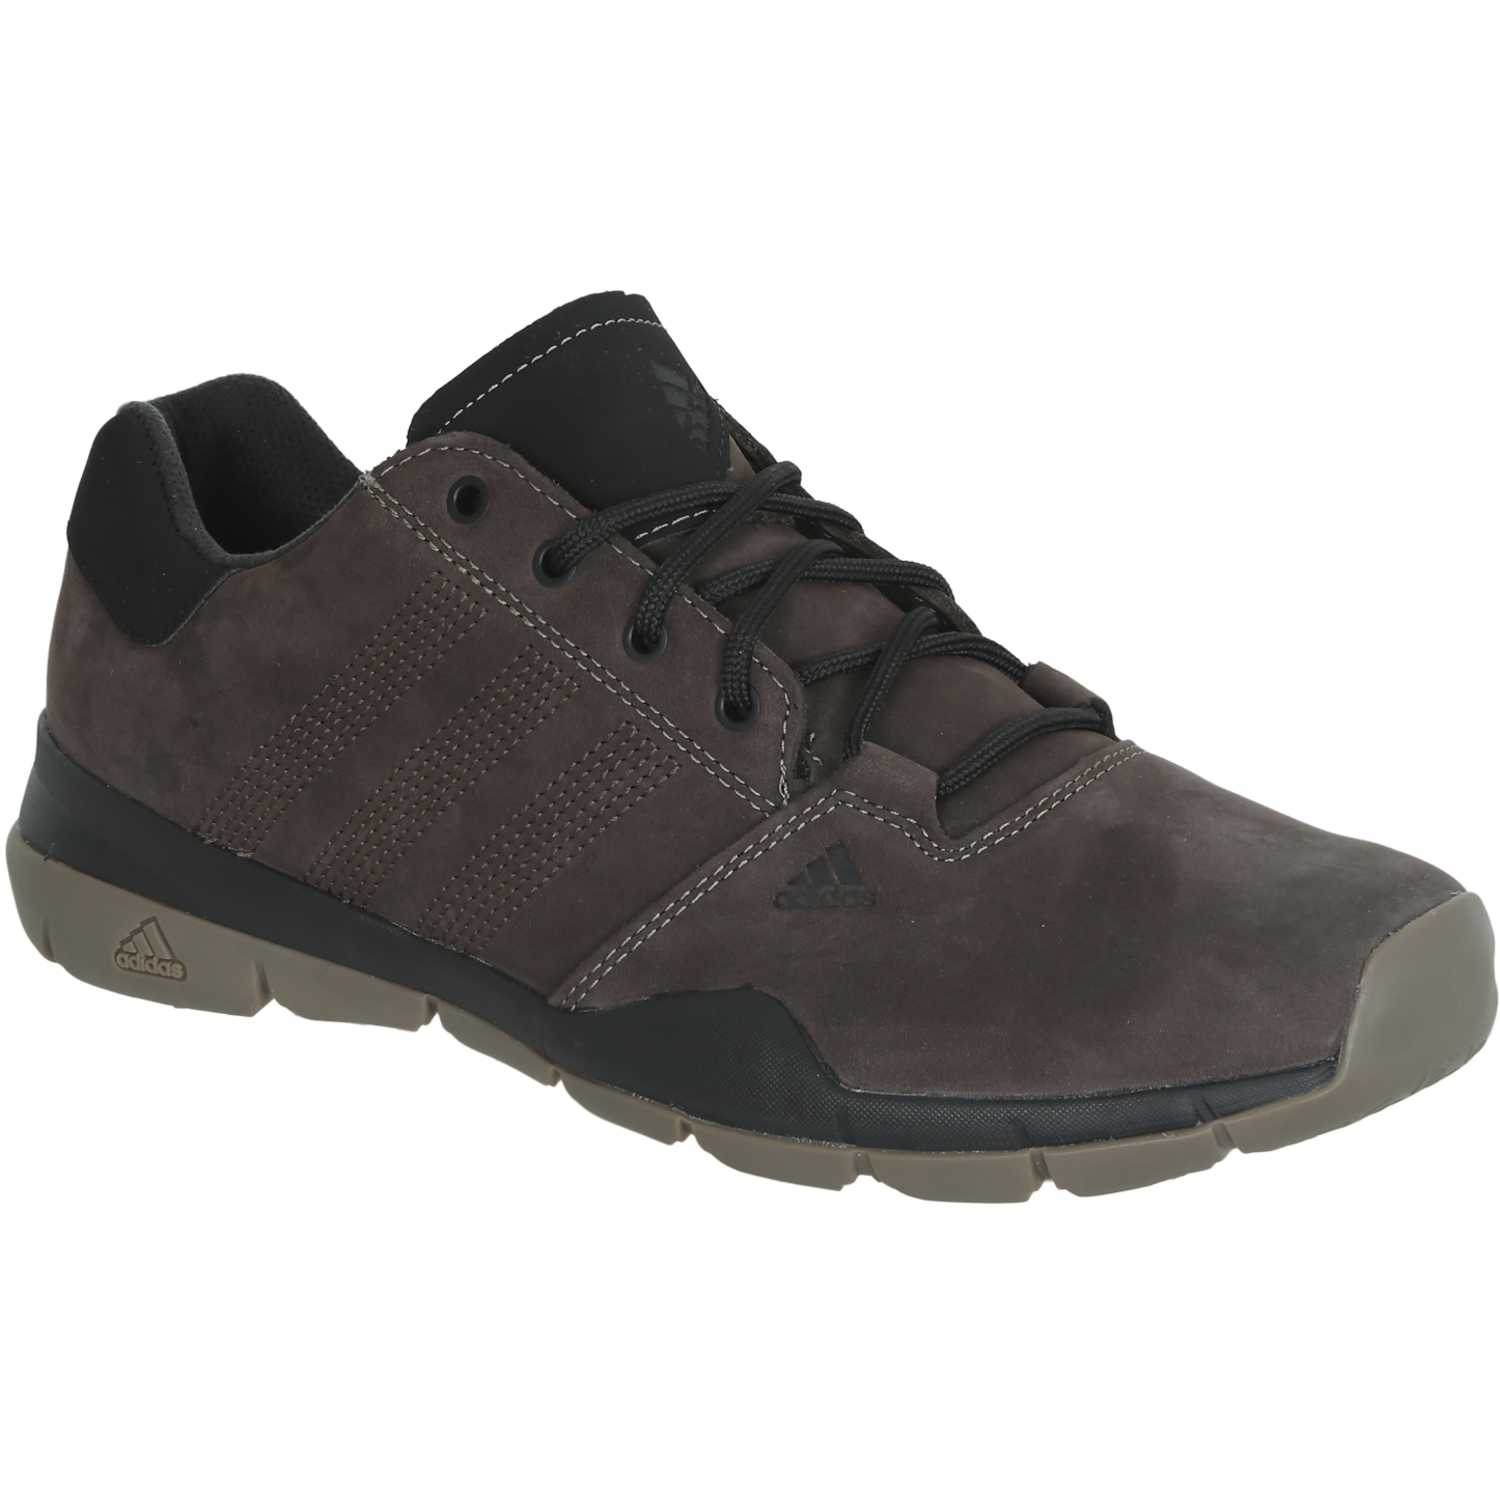 Adidas ANZIT DLX Marron Calzado hiking